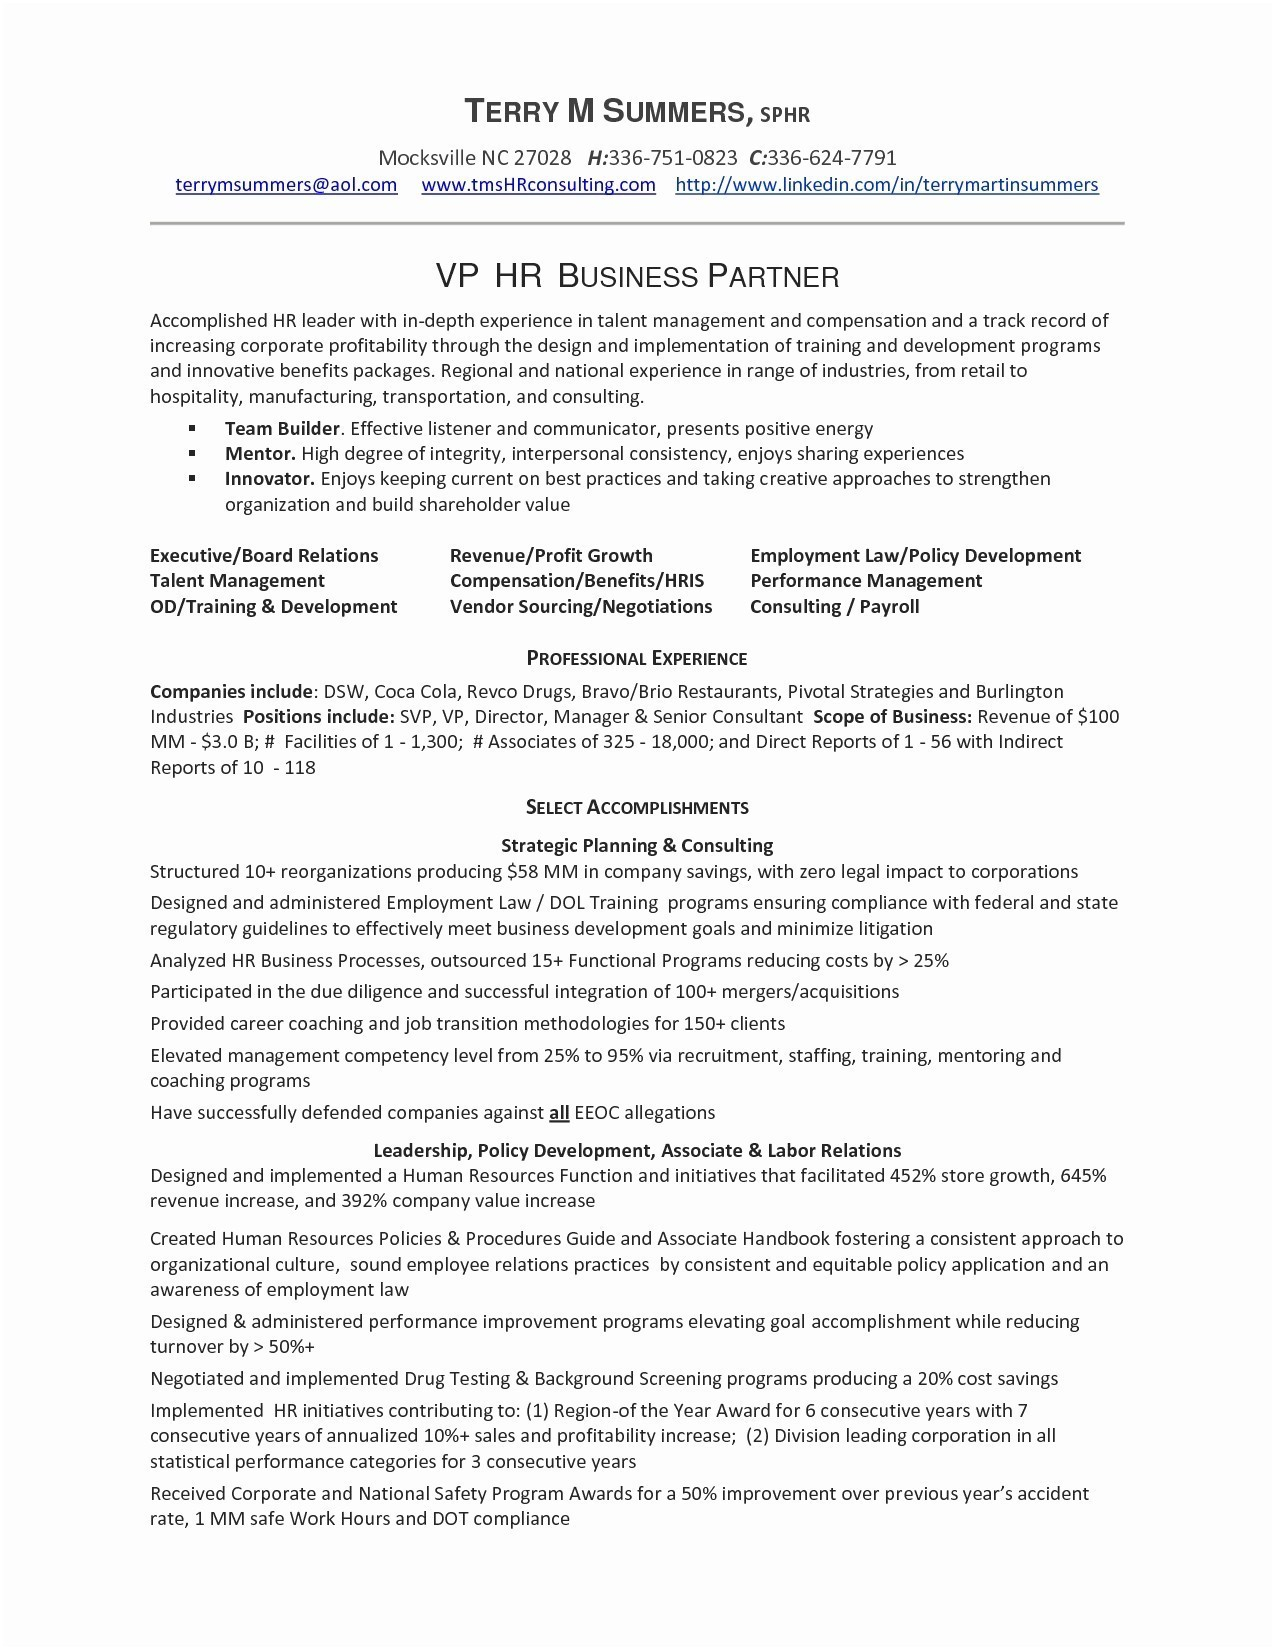 Business Proposal Letter Template - How to Write A Business Proposal Letter Template Inspirationa Sales